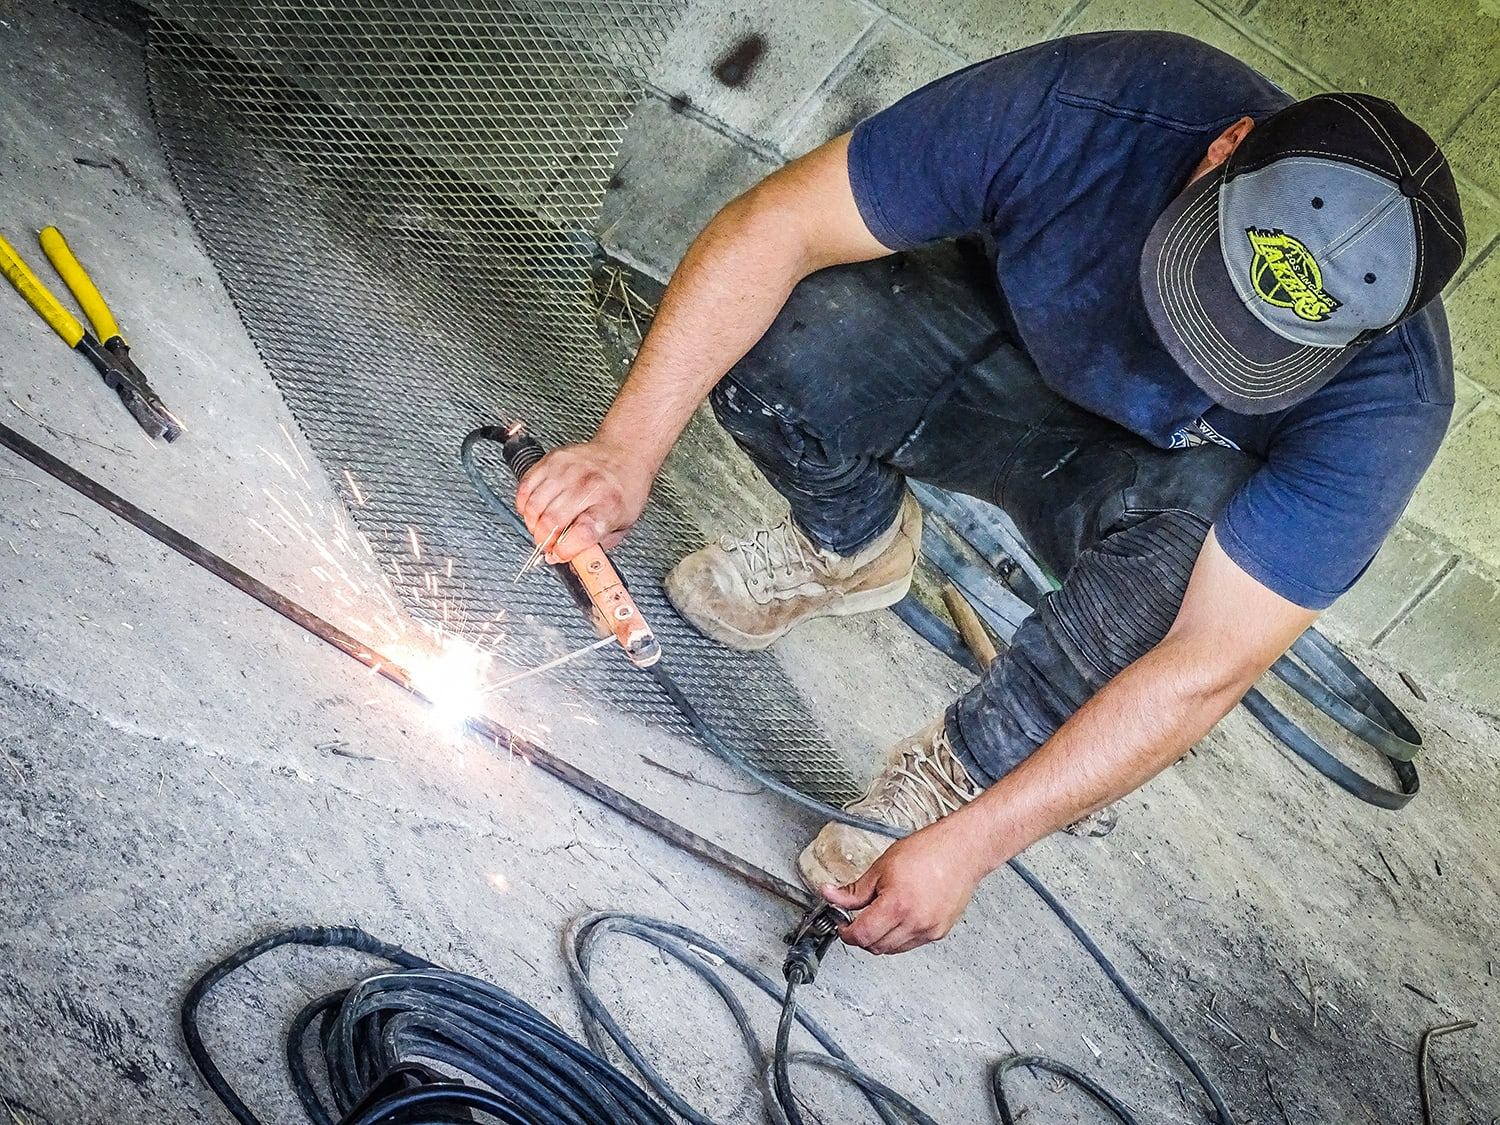 A young man squatting, welding a piece of metal.